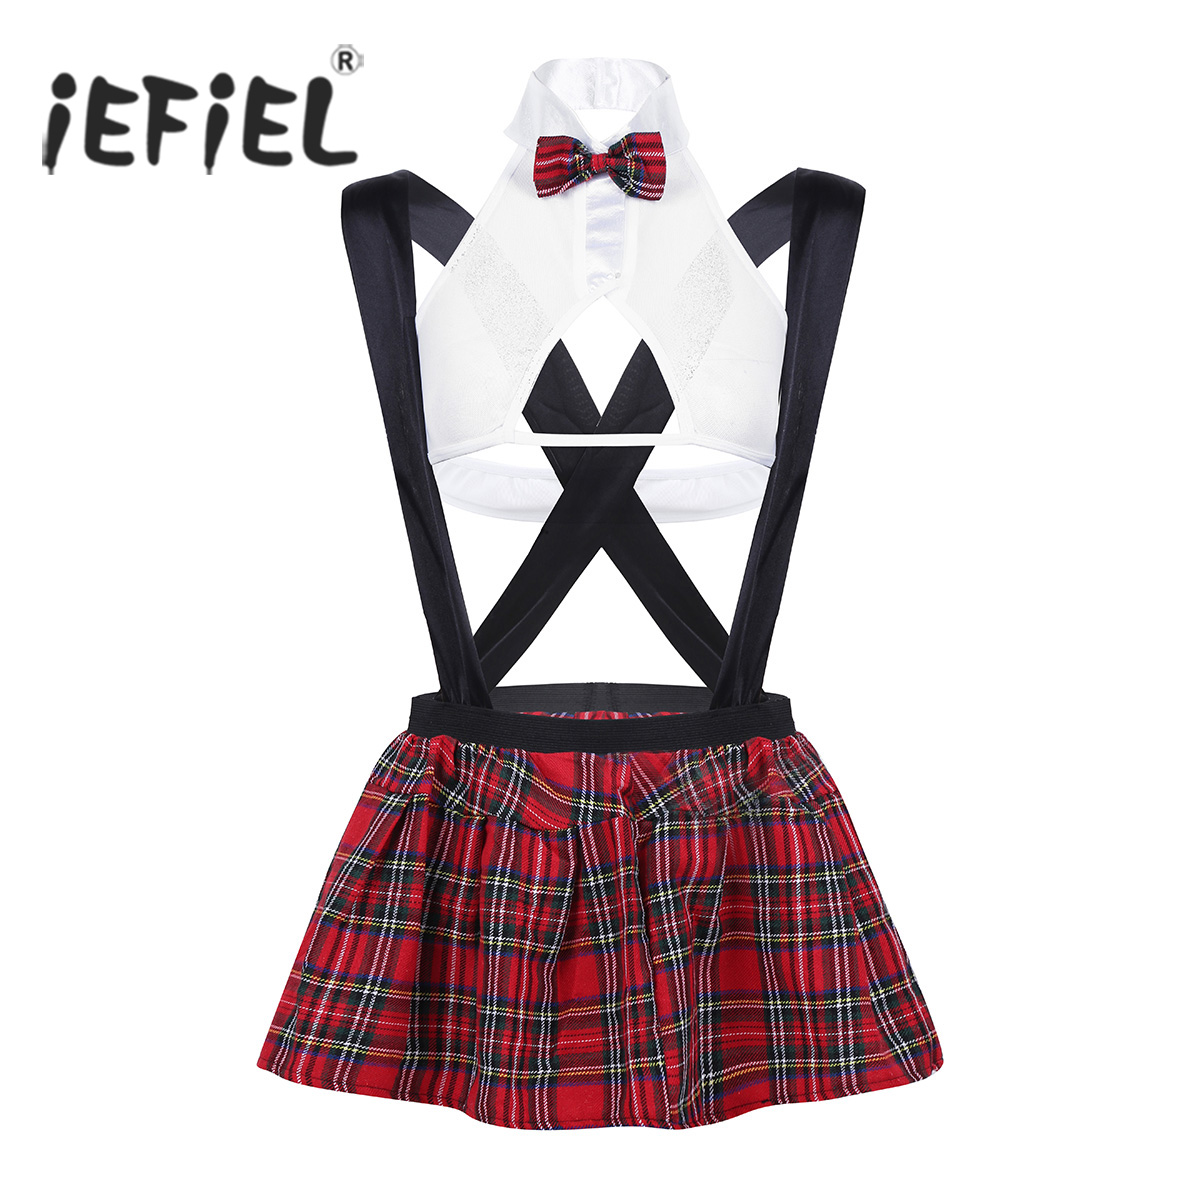 3Pcs Women School Girl Cosplay Sexy Costumes Lingerie Outfit Sheer Mesh Top Shirt with Suspender Plaid Mini Skirt and G-string